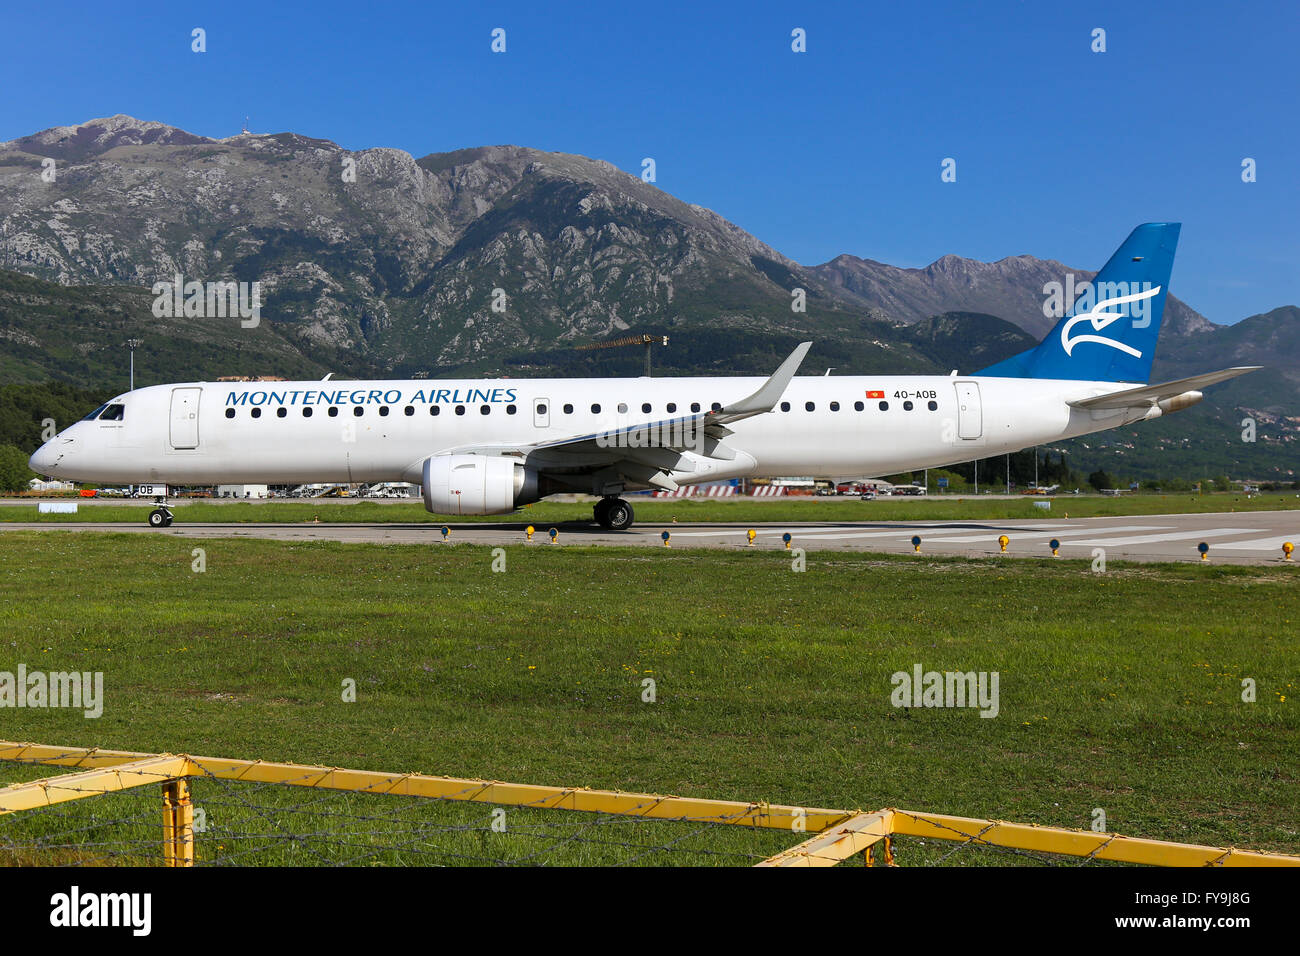 Montenegro Airlines Embraer 190 vacates runway 32 at Tivat airport. - Stock Image